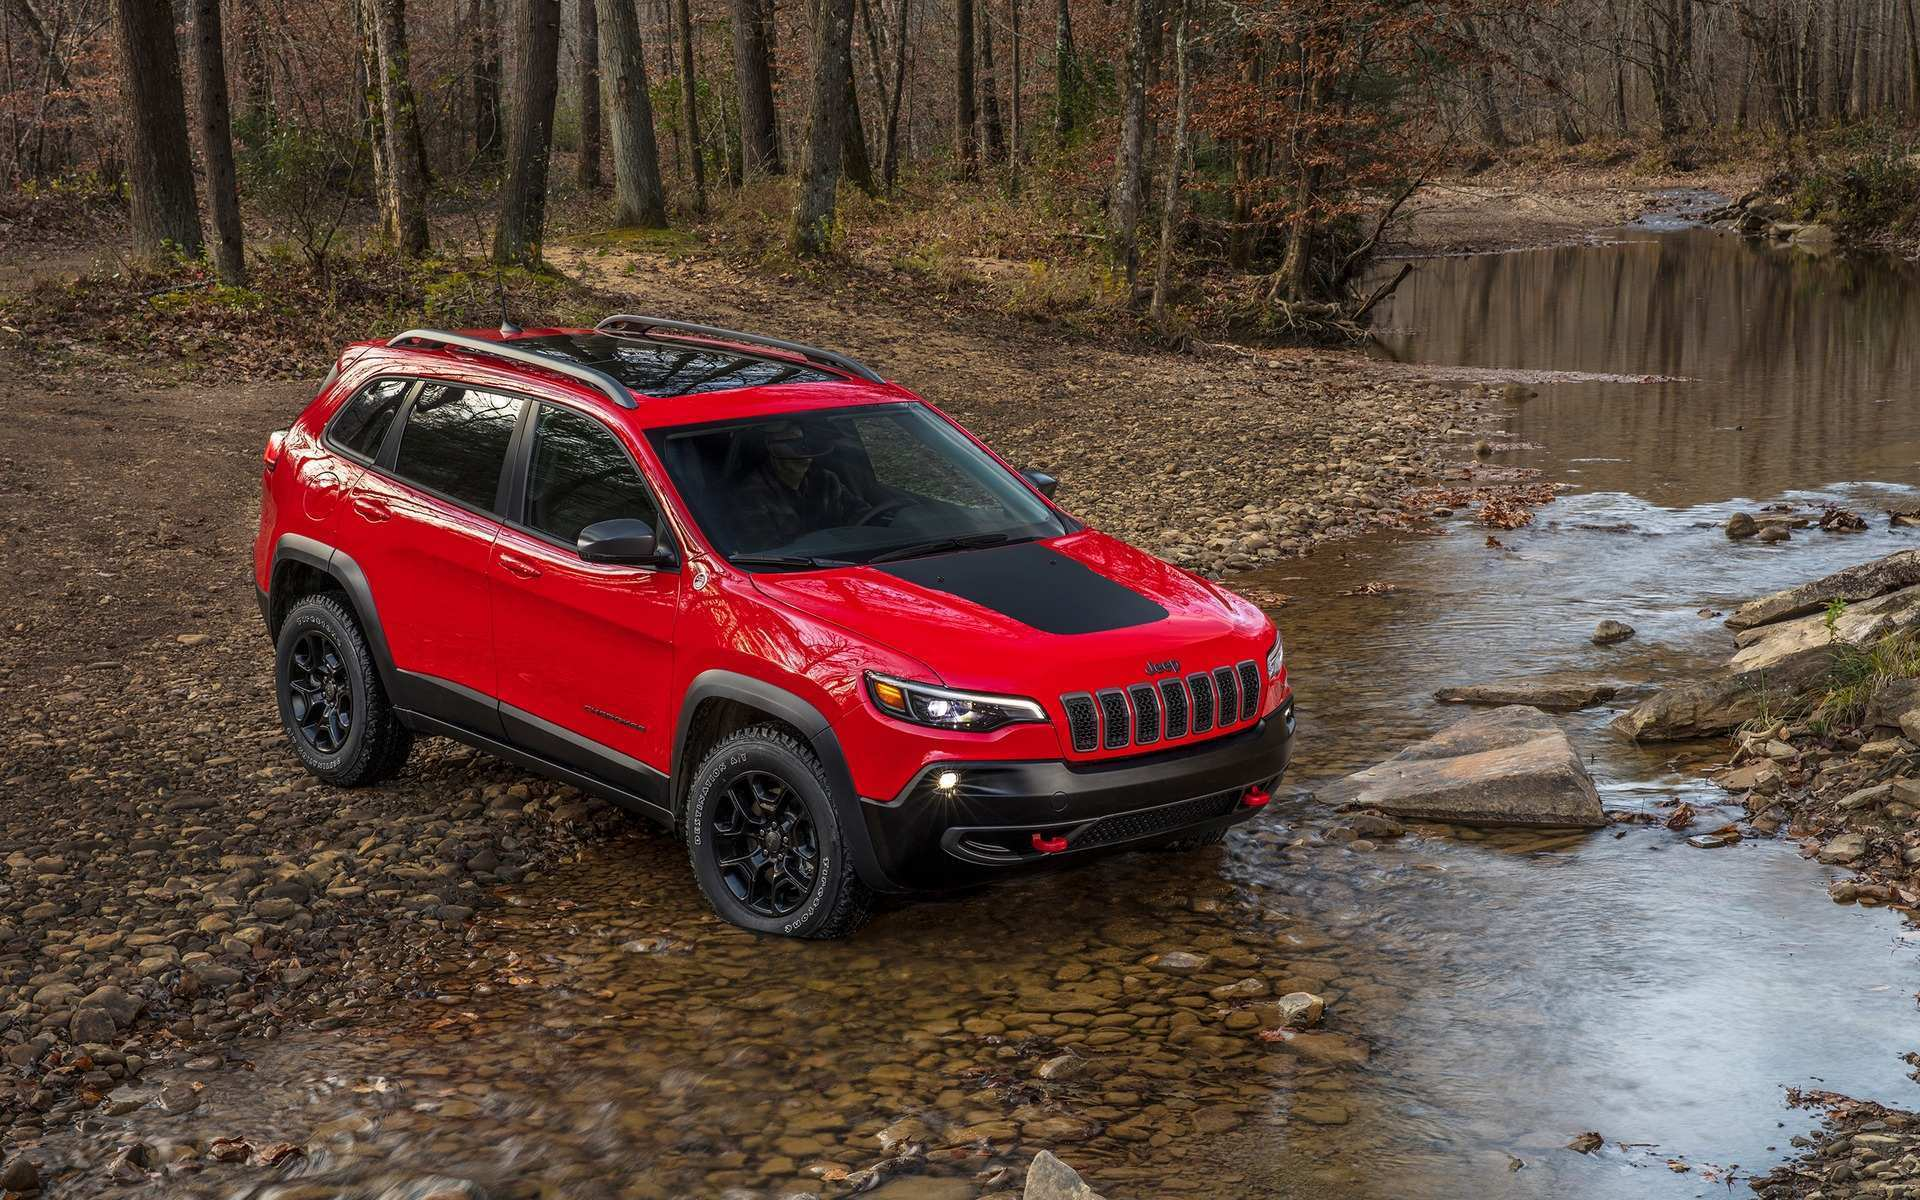 75 All New 2019 Jeep Cherokee Kl Model with 2019 Jeep Cherokee Kl